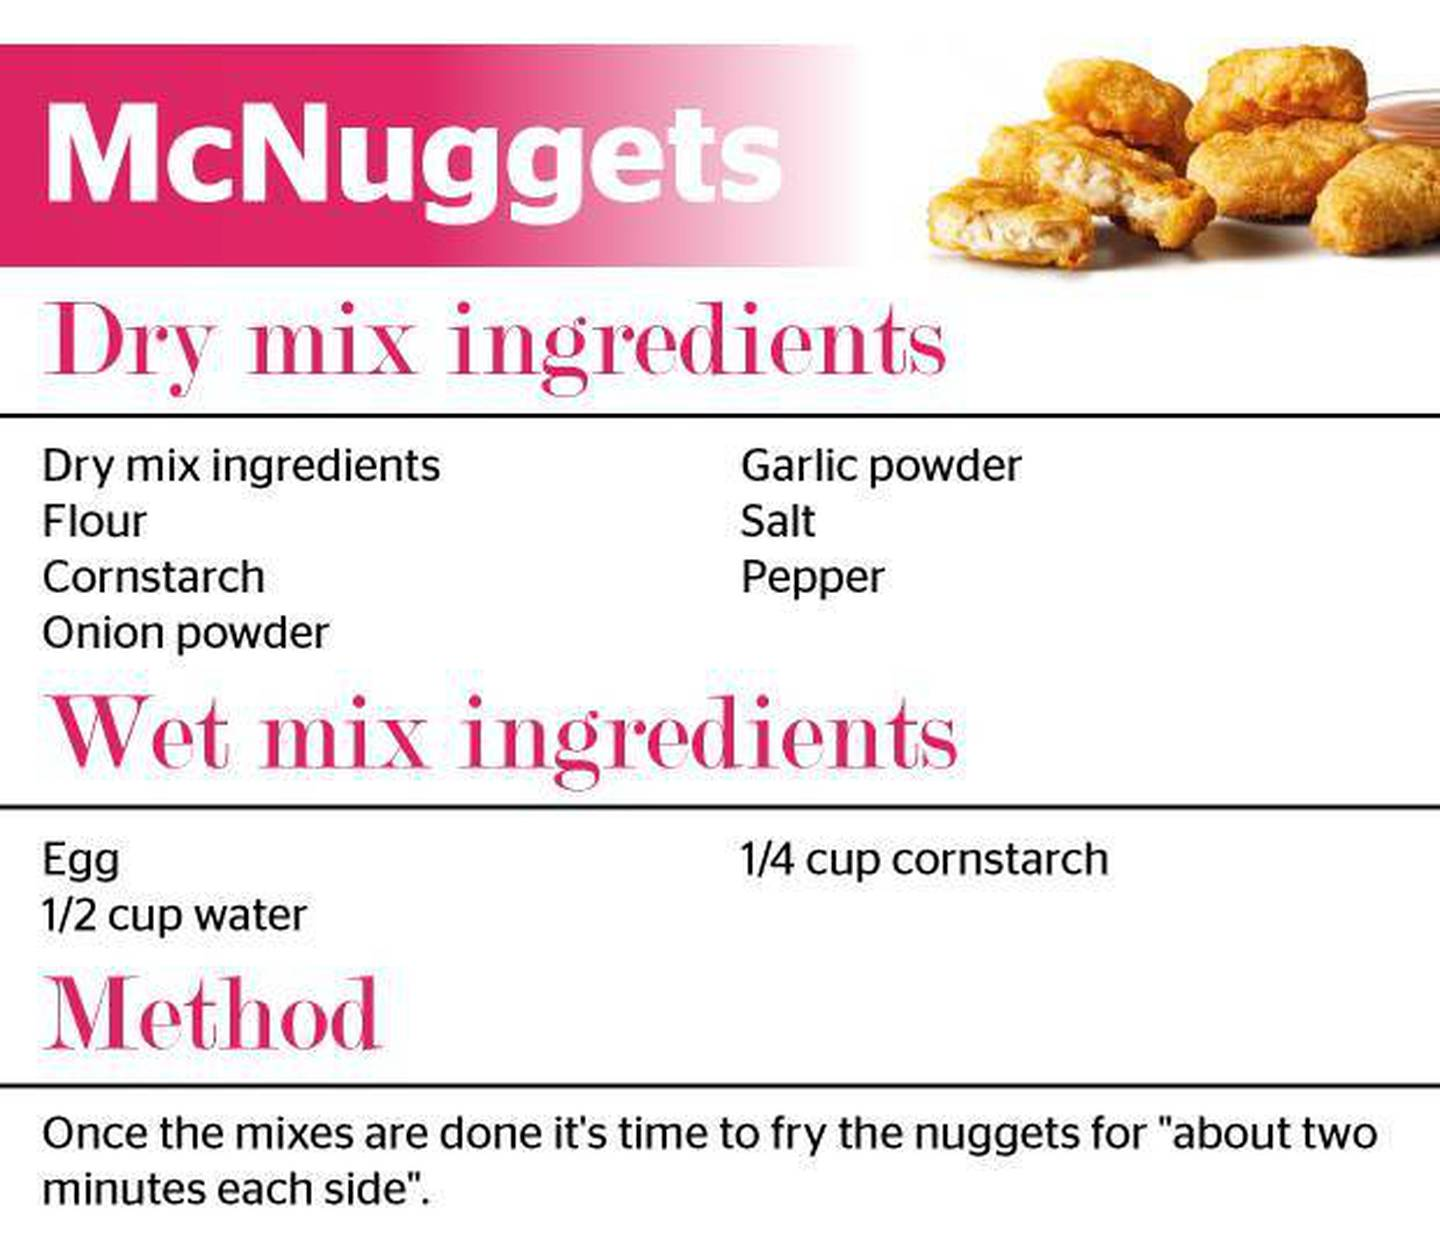 McNuggets. Image: Supplied via NZH